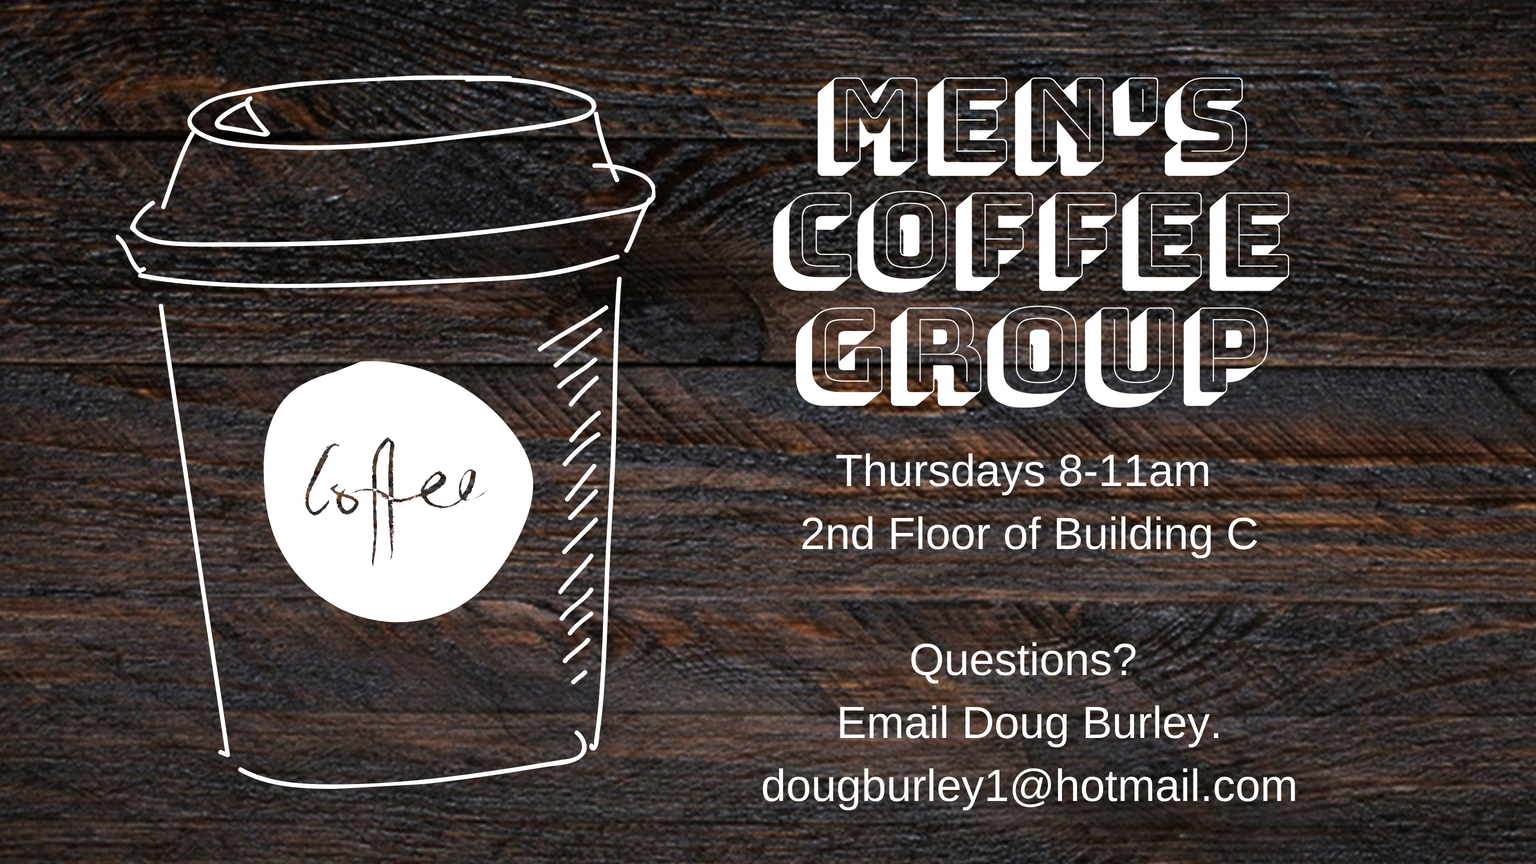 Men's Coffee Group -  Thursday mornings are reserved for casual conversation over coffee. Bring your favorite mug, with a desire for deepening friendships to the second floor of the C building, Thursdays from 8:00 - 11:00am.